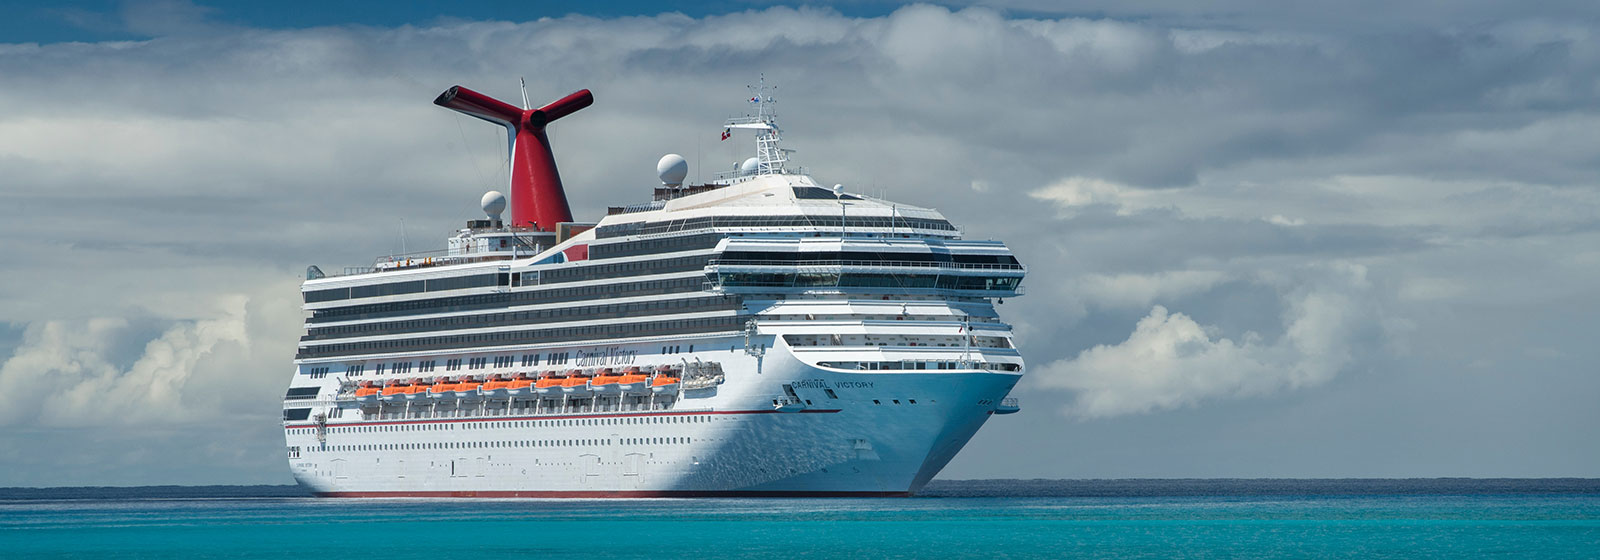 Victory - Carnival Cruises